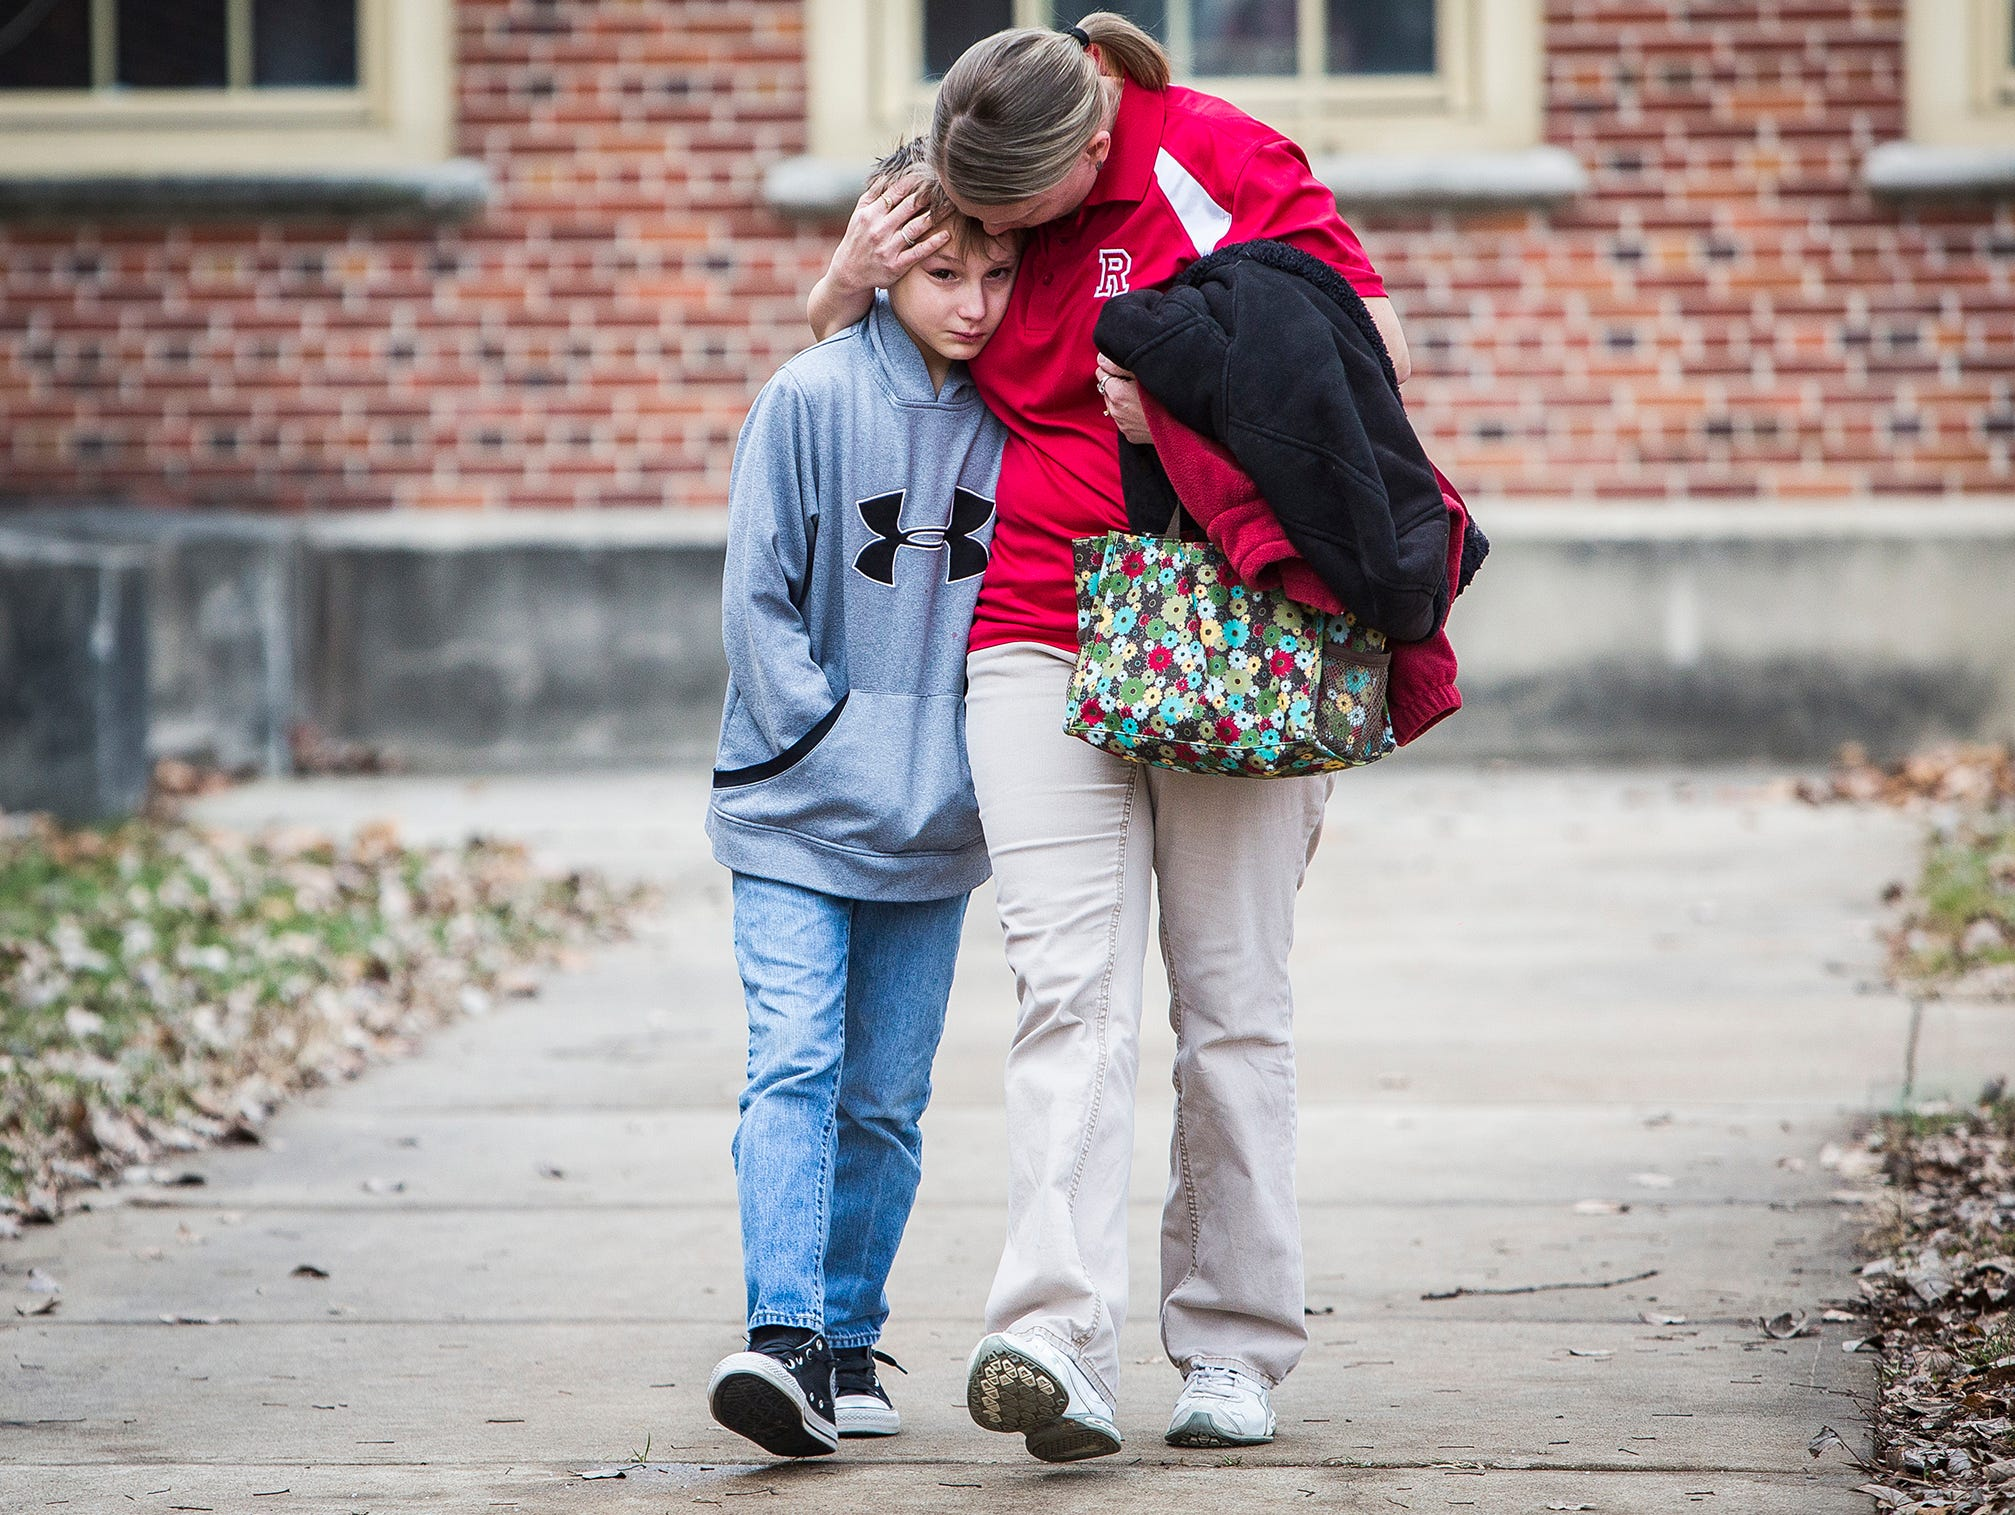 Marietta Bryant exits the Civic Hall Performing Arts Center after reuniting with her son, Austin, following a shooting that occurred at Dennis Intermediate School Thursday morning.